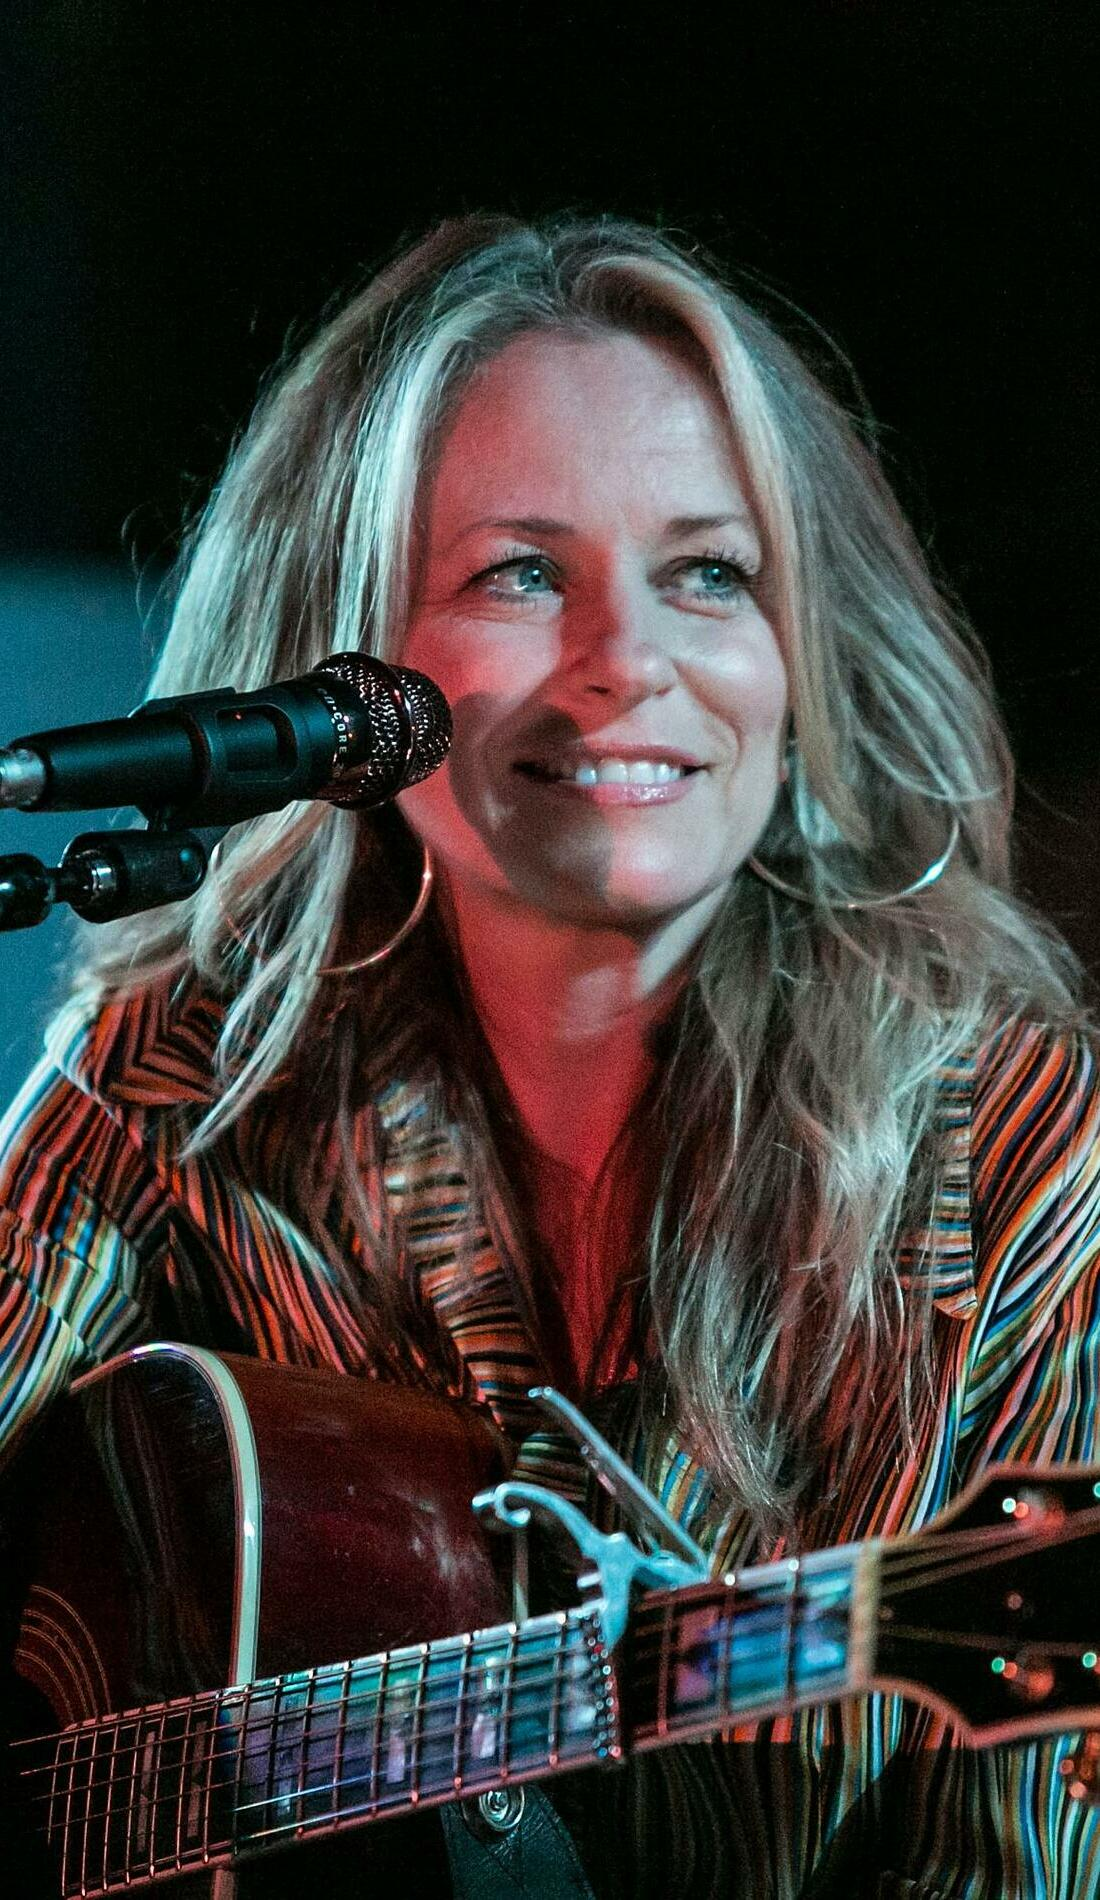 A Deana Carter live event